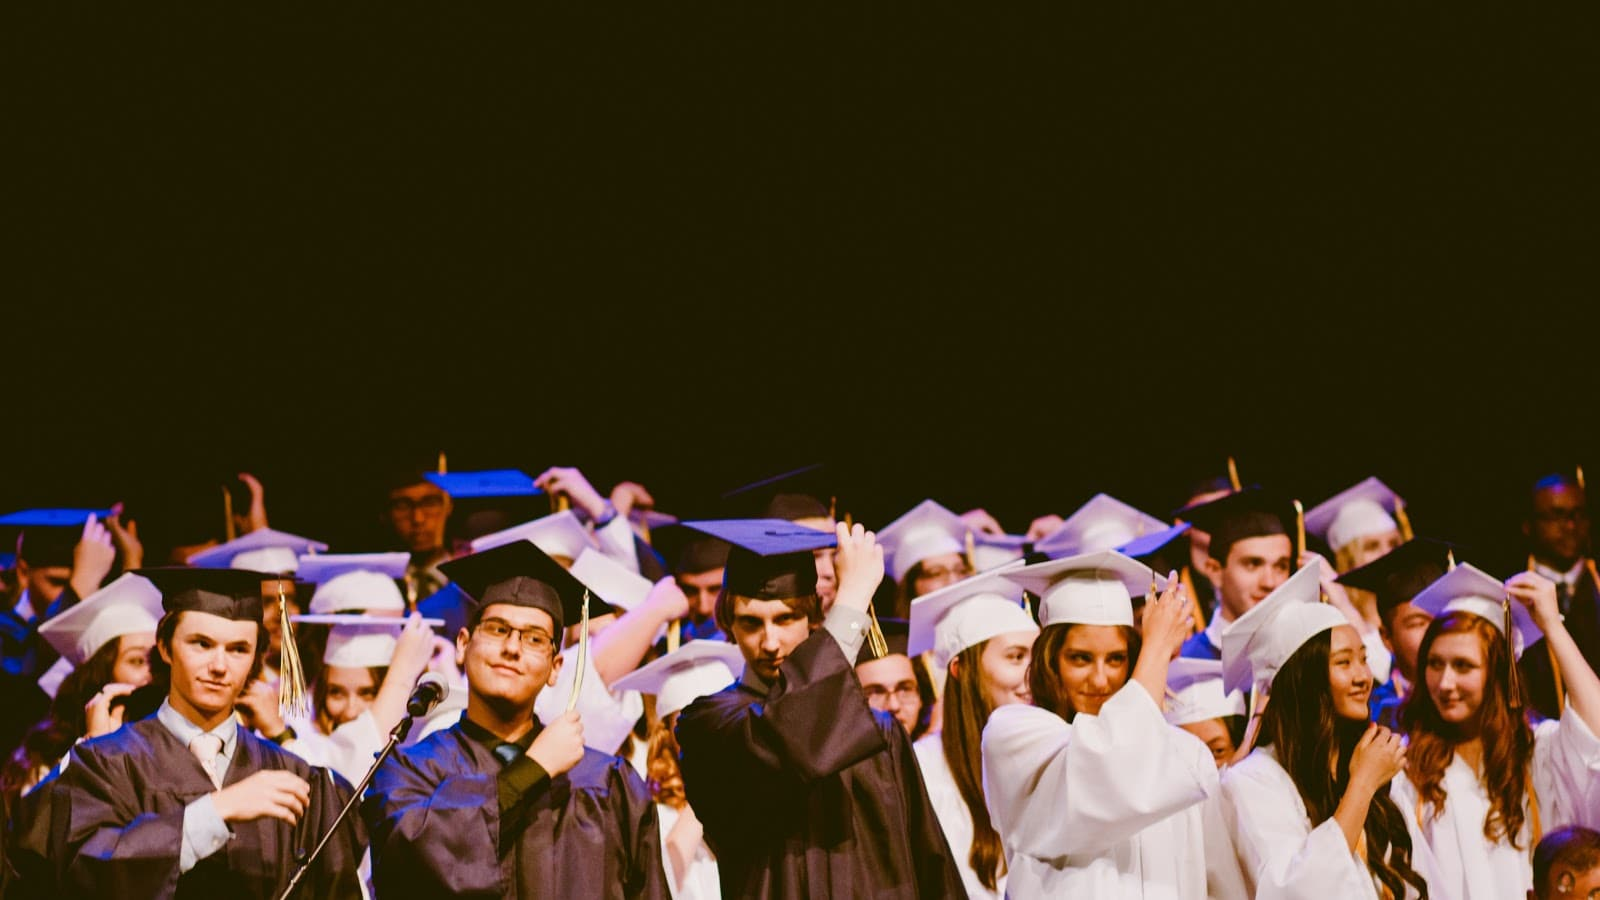 How to Become an Event Planner: graduation